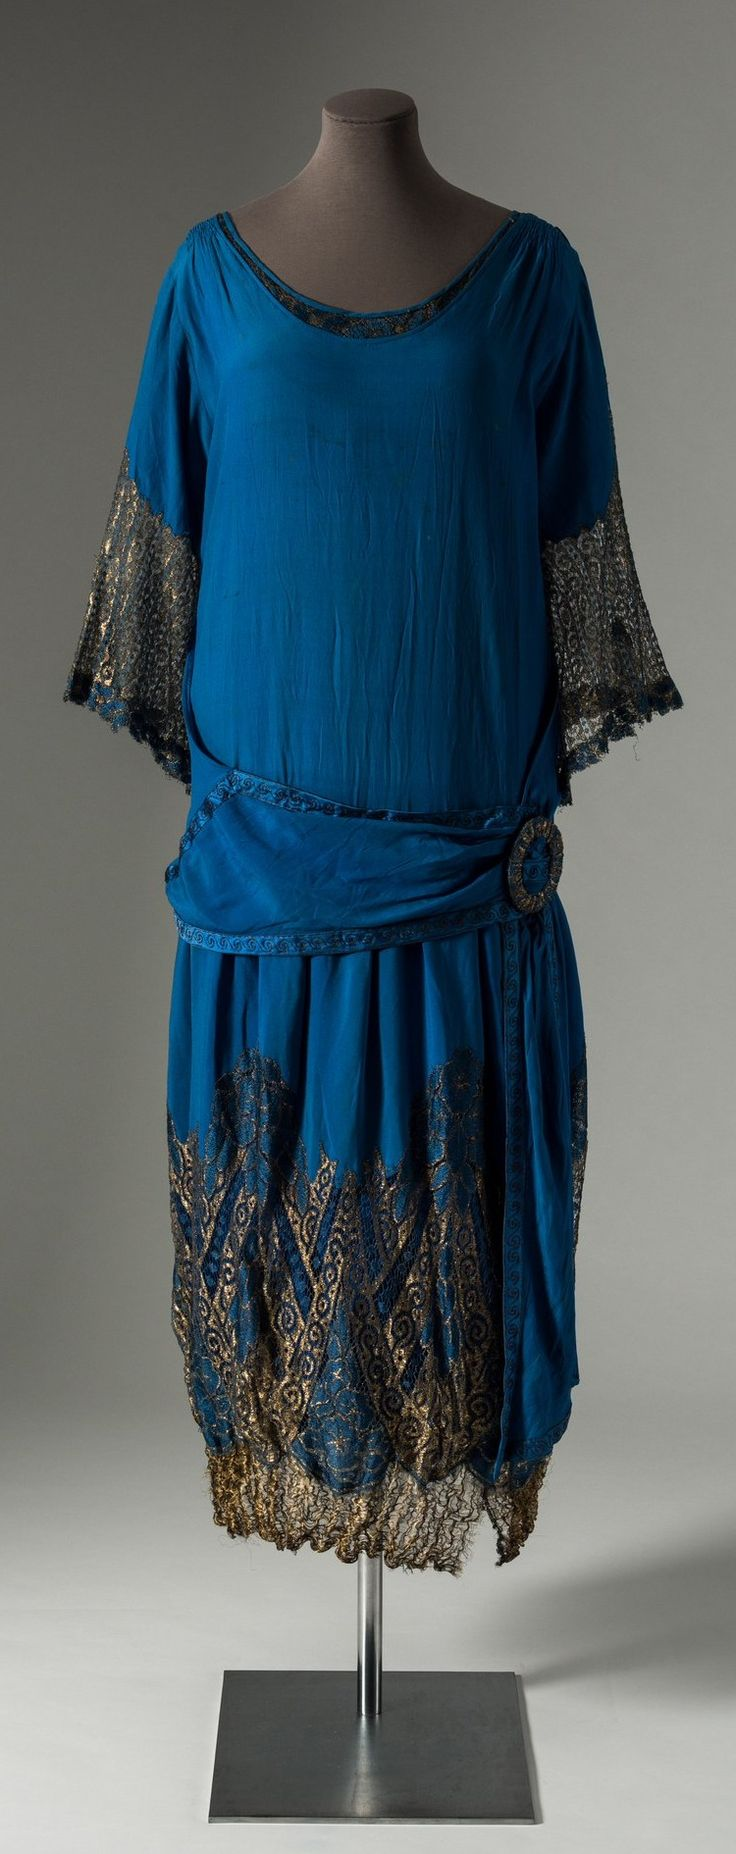 Blue silk crepe dress trimmed with gold metal thread lace, 1920s. Collection of Fashion Museum Bath, via @Fashion_Museum on Twitter.